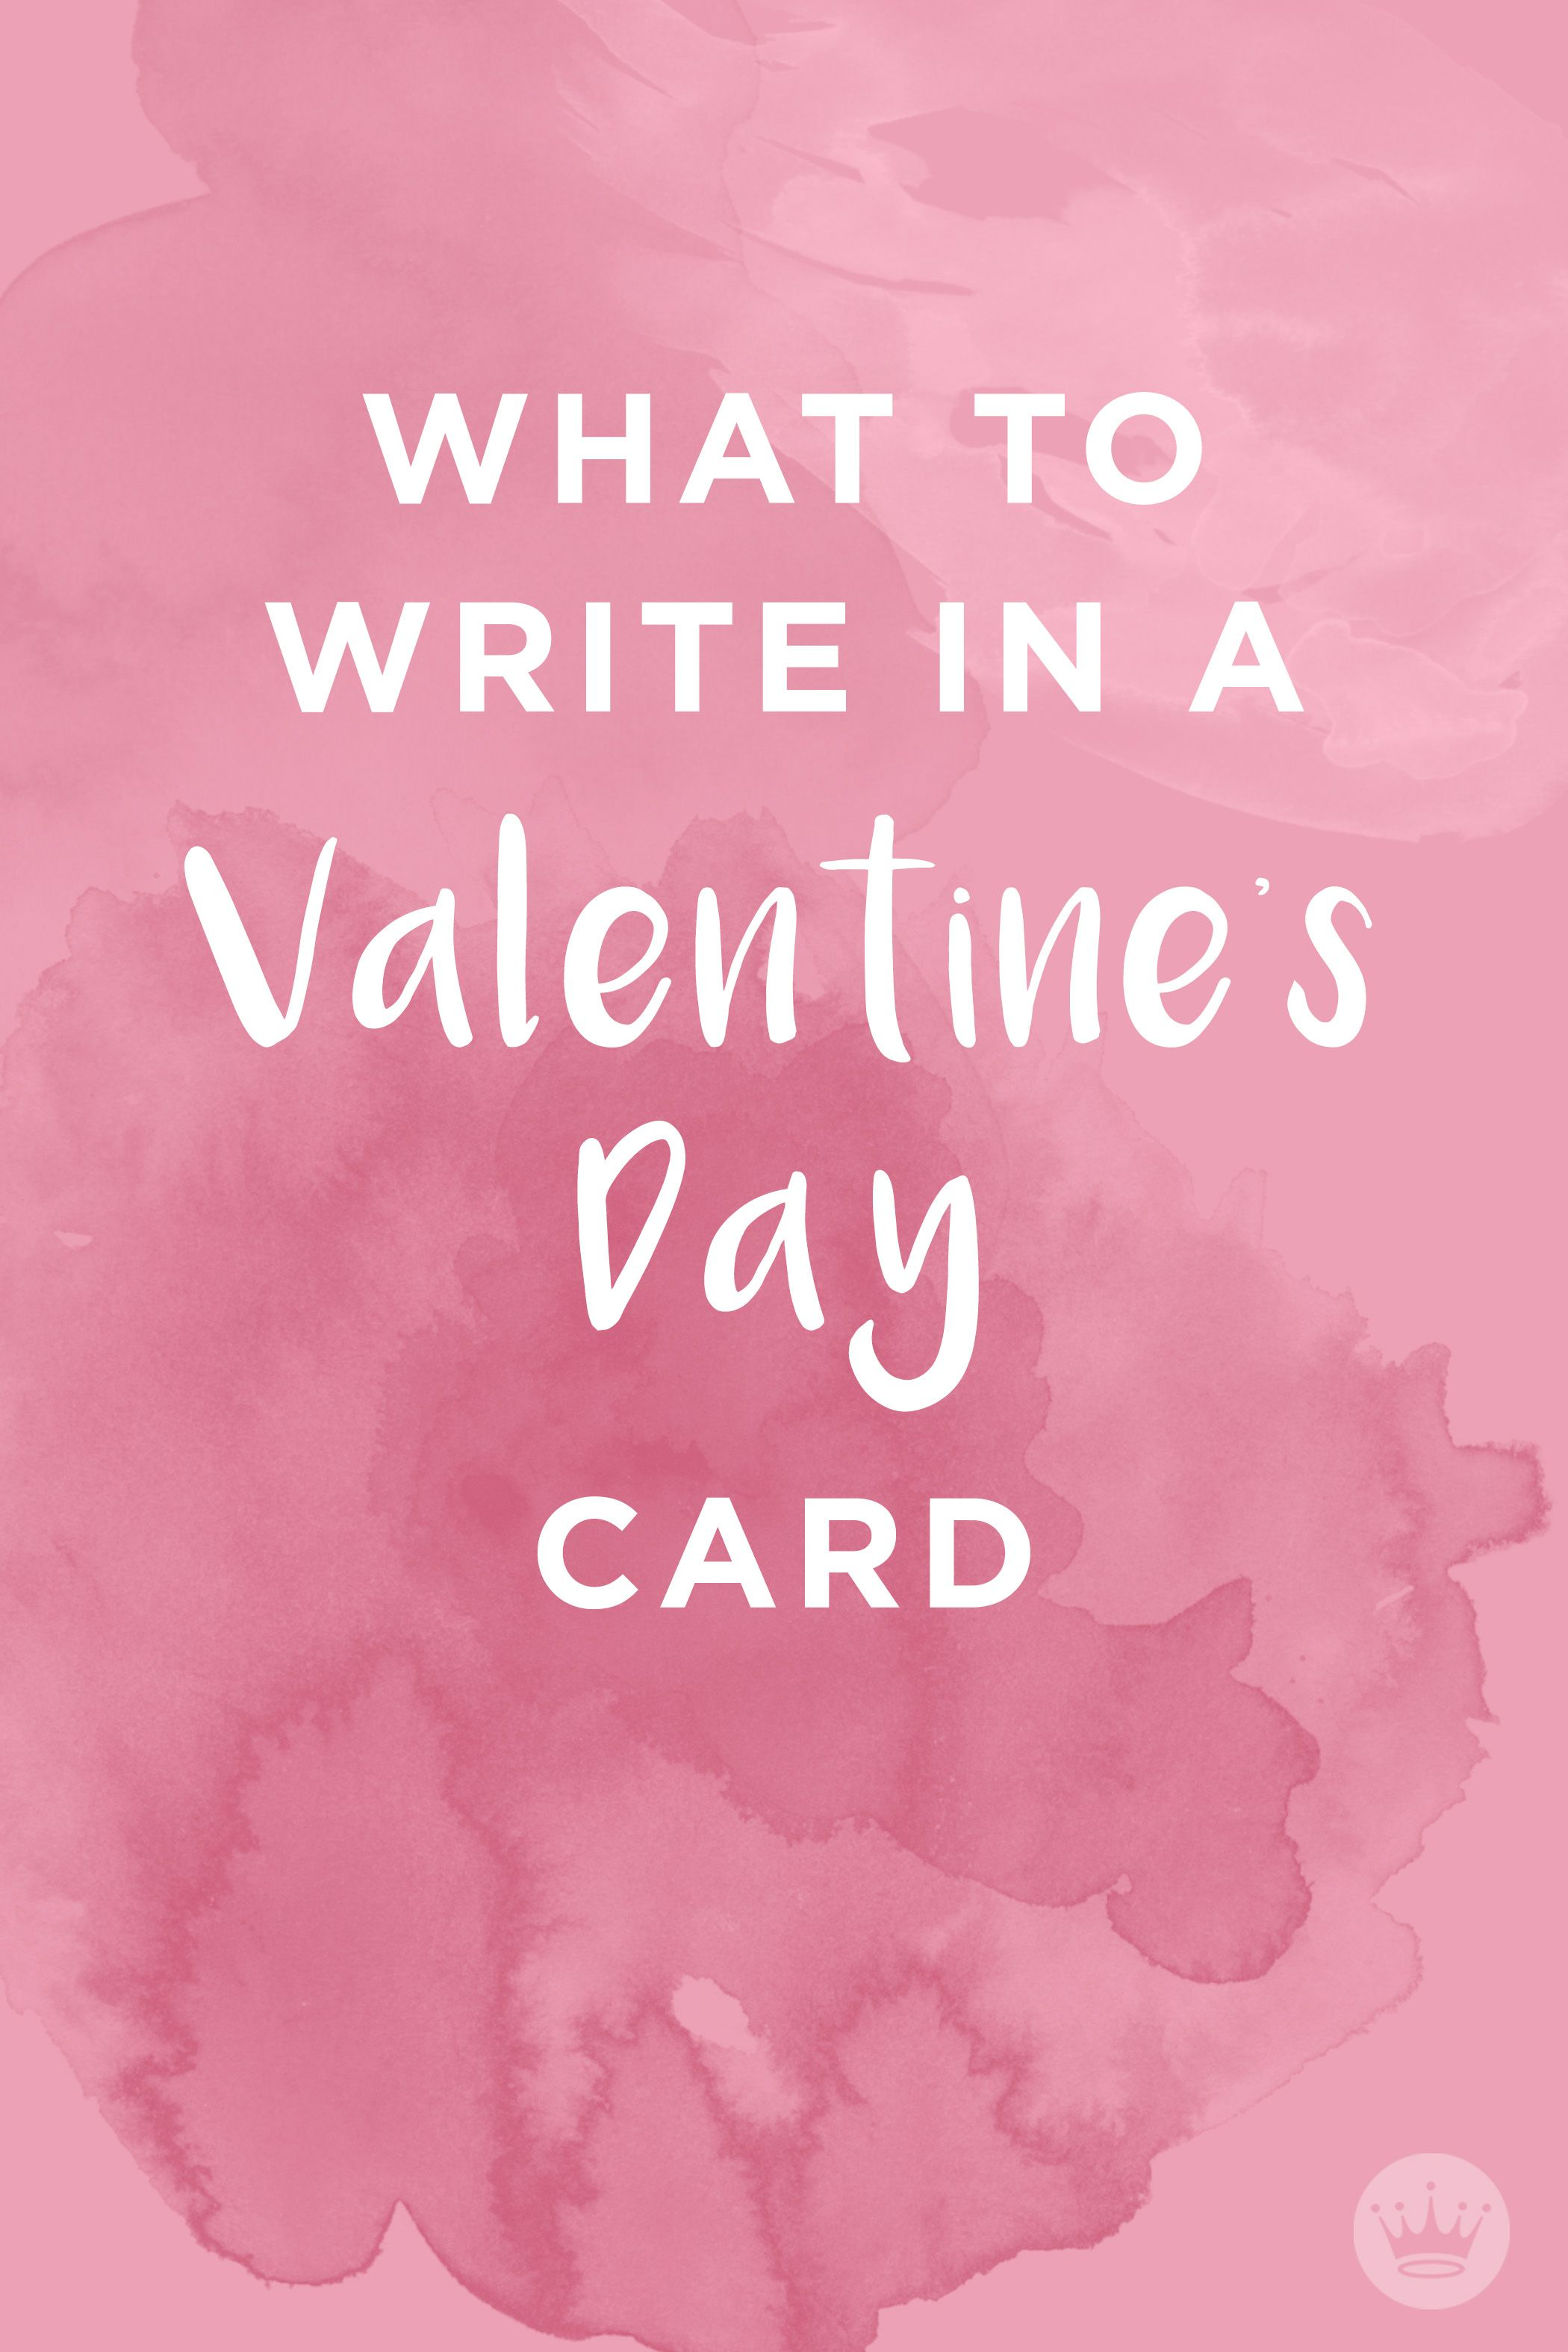 Valentine messages what to write in a Valentines Day card – Valentines Card Verses